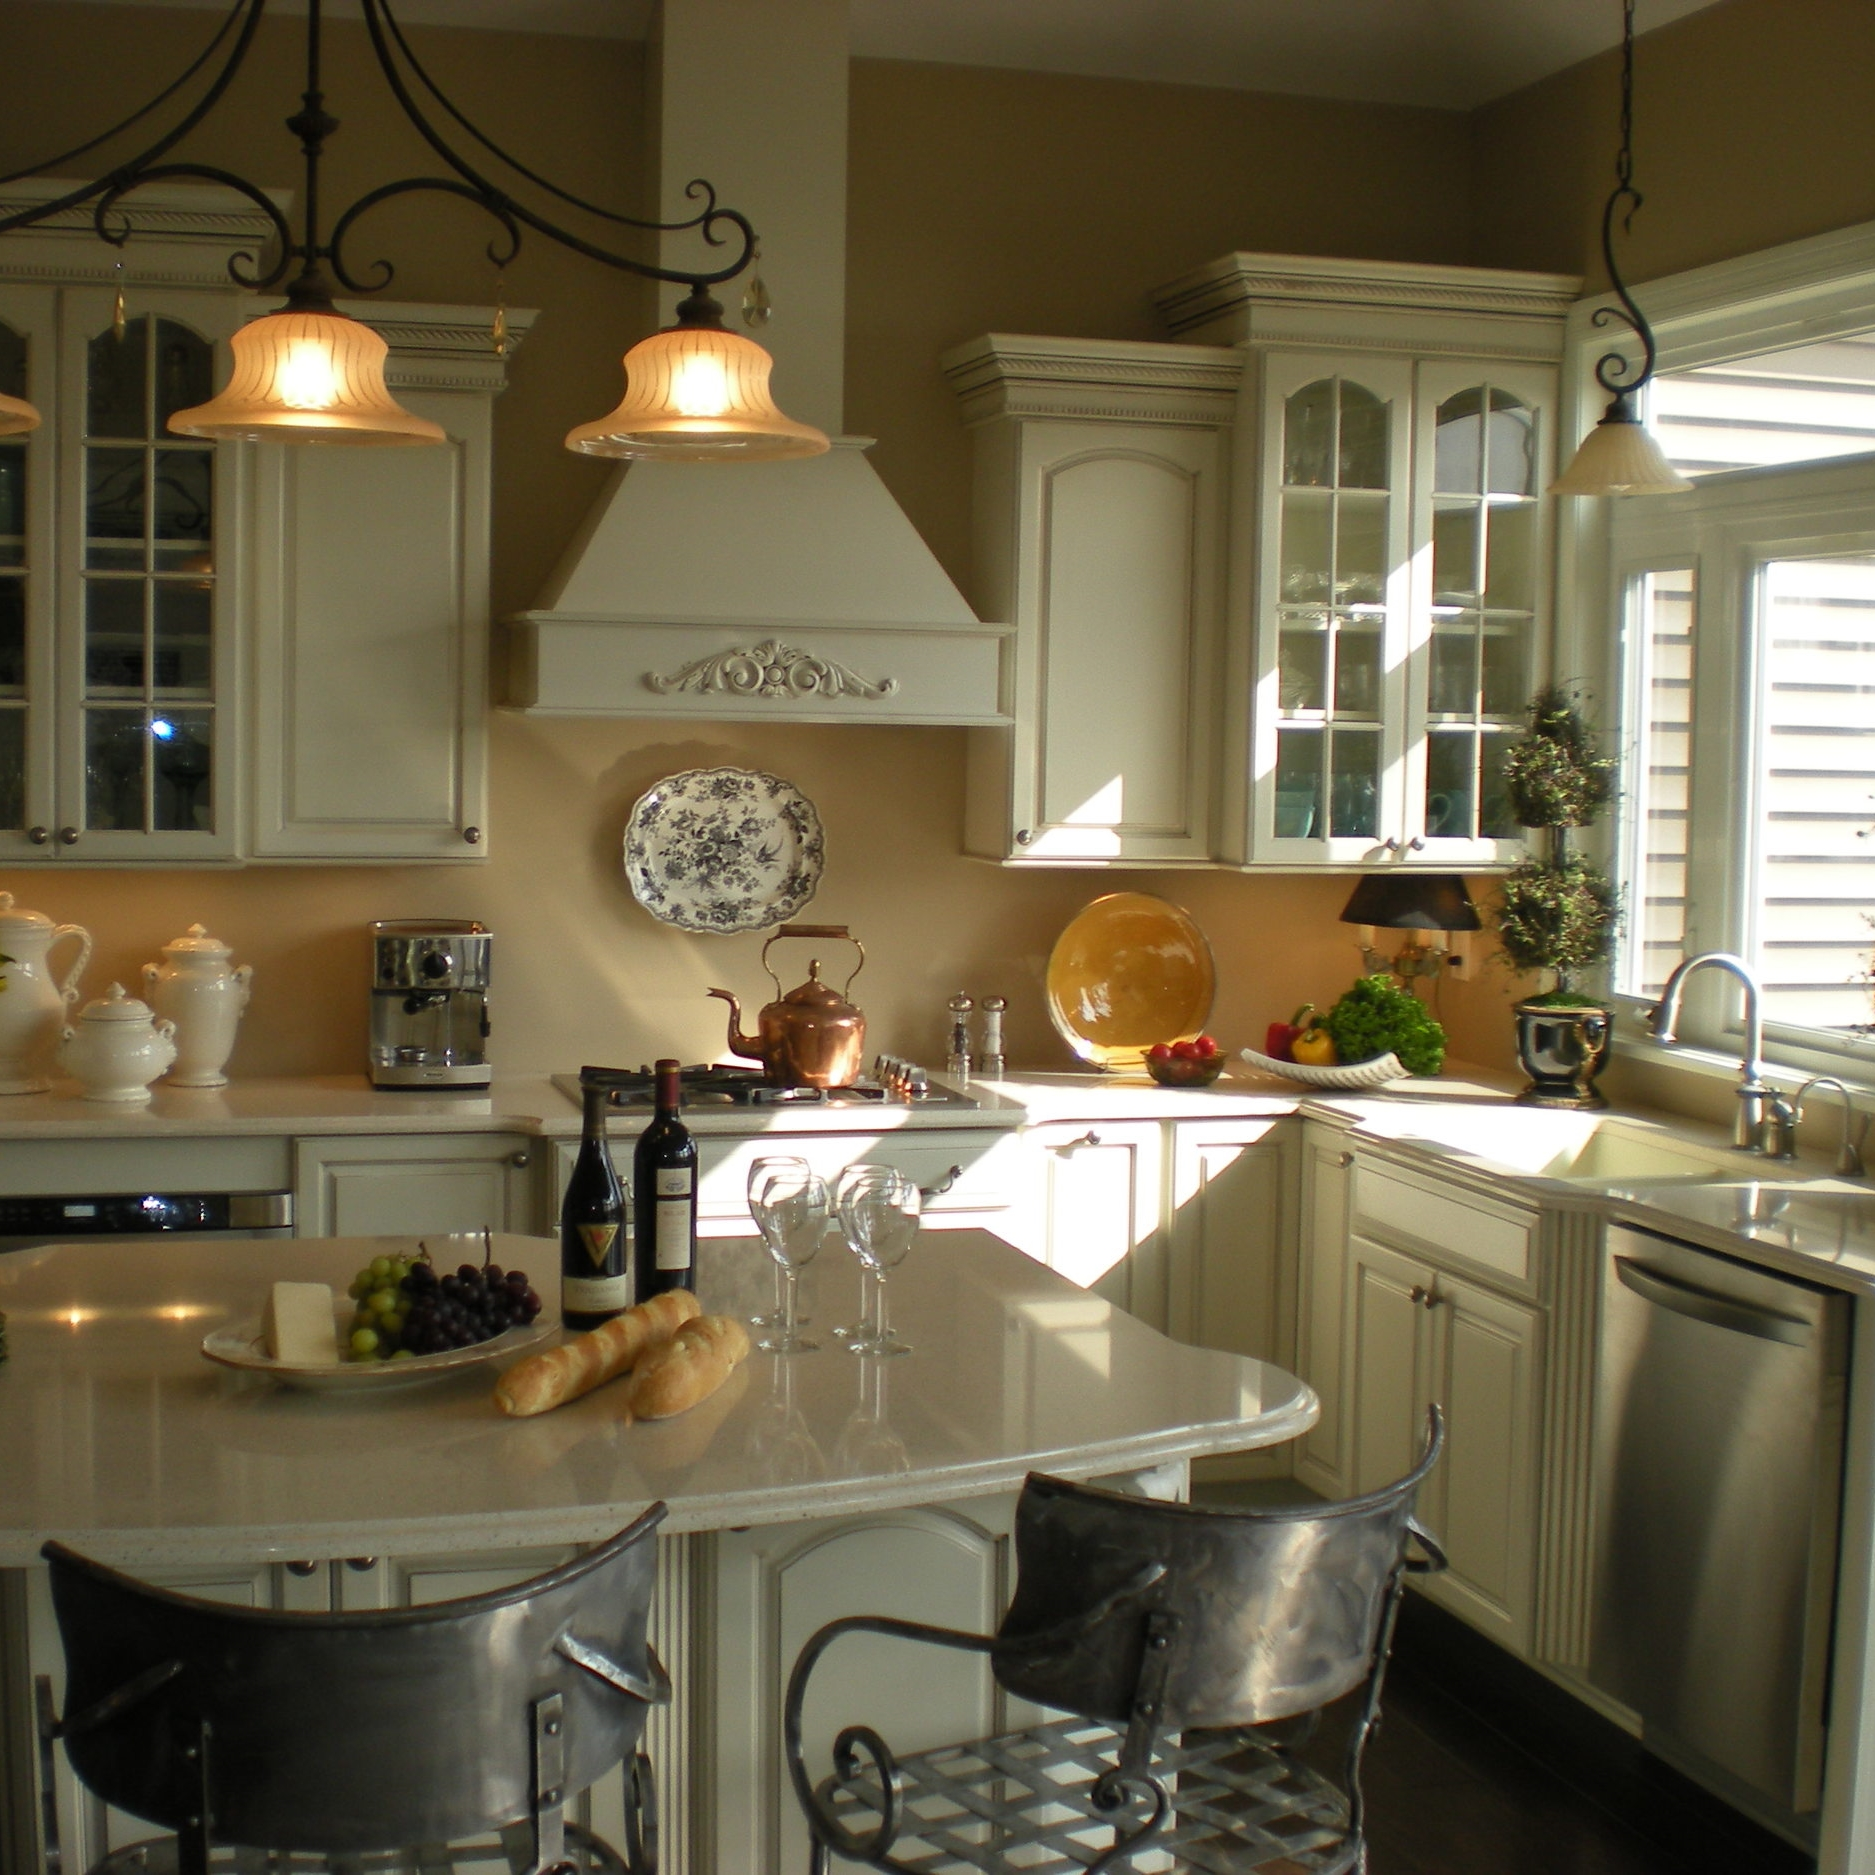 Completed kitchen remodel in rochester ny